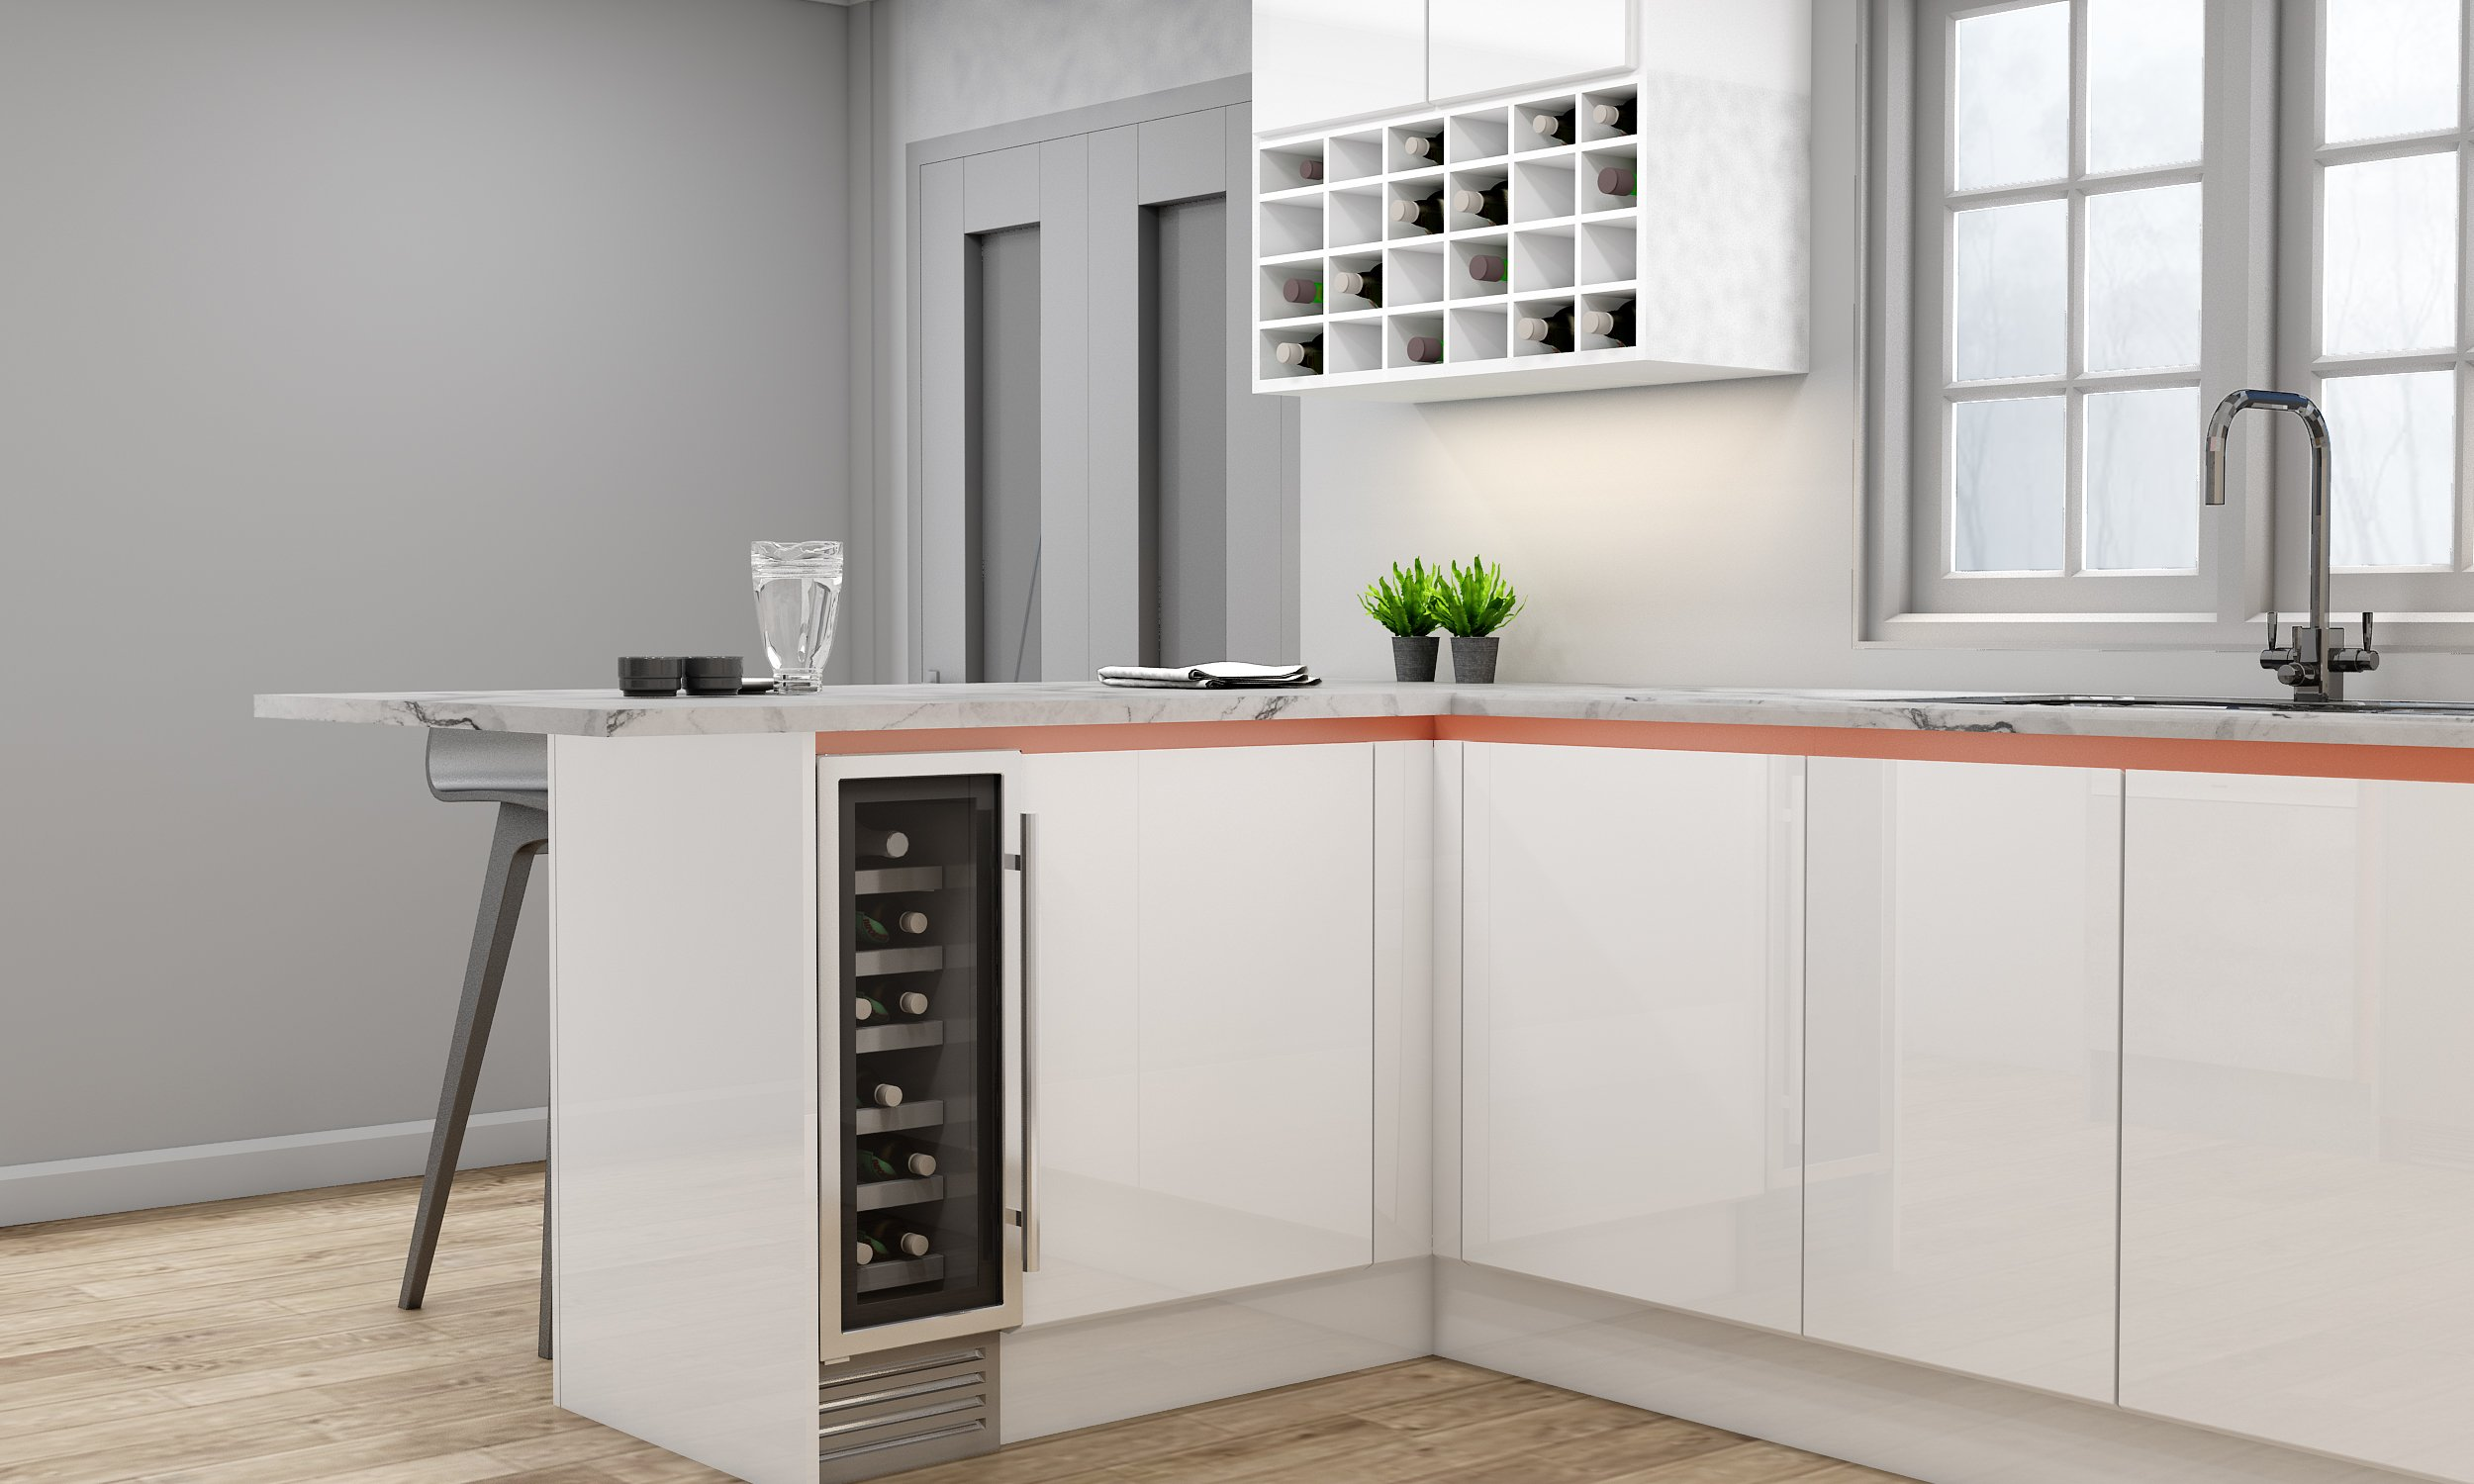 Handleless G Shape Kitchen in Brass Handle Profile With High Gloss White and Concrete Finish and Wine Rack